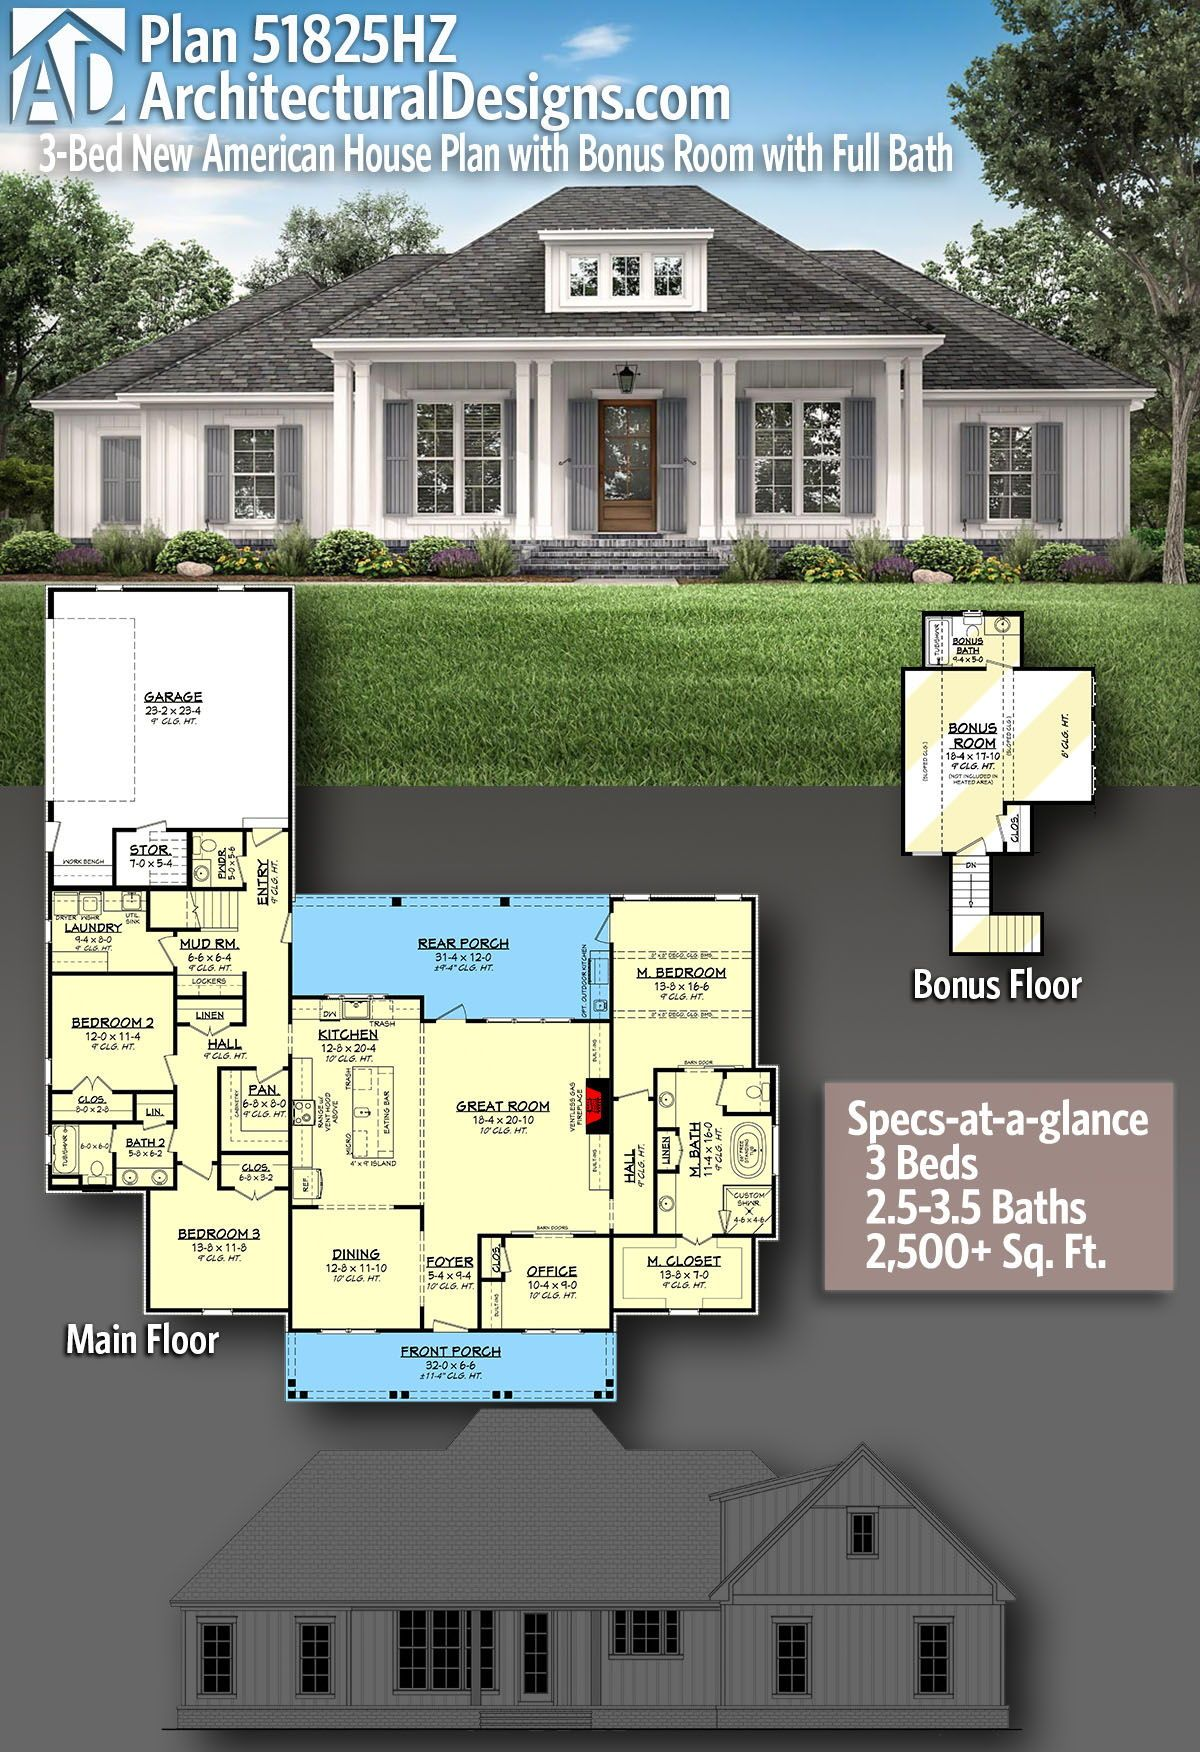 Plan 51825hz 3 Bed New American House Plan With Bonus Room With Full Bath In 2020 American Houses House Plans House Plans For Sale